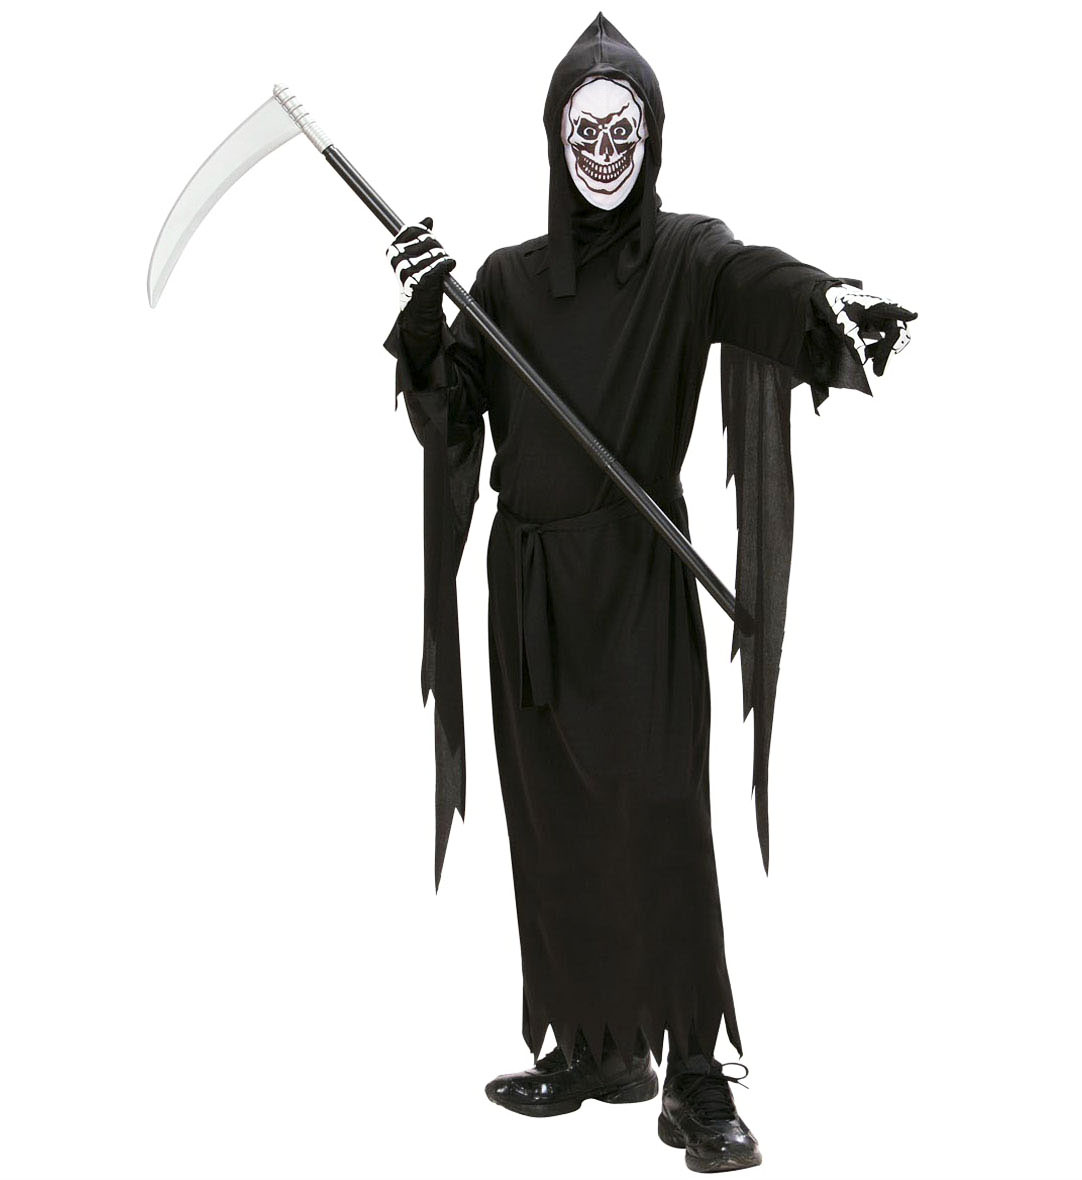 Childrens Grim Reaper Halloween Fancy Dress Costume Outfit 128Cm 5-7 Yrs